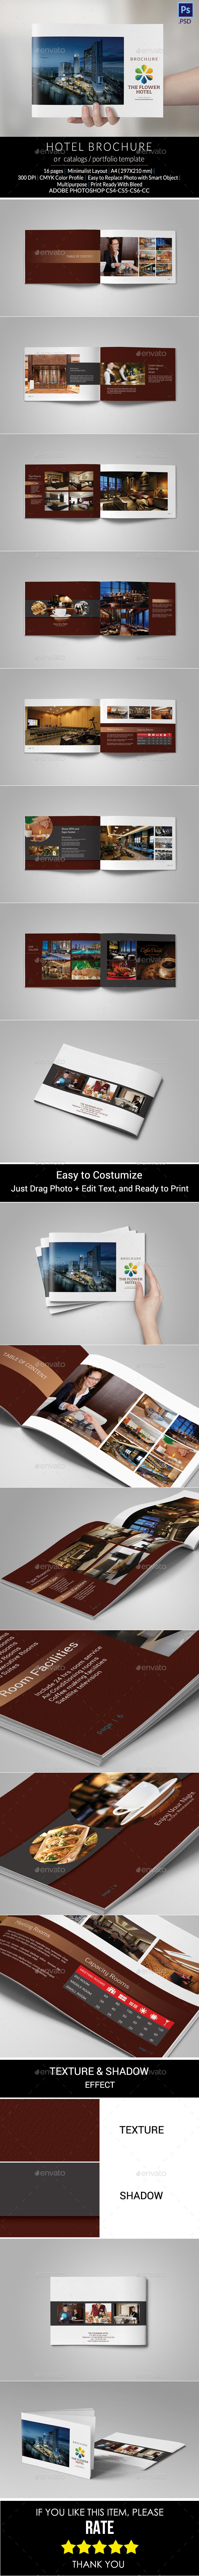 Hotel Brochure Graphics, Designs & Templates from GraphicRiver